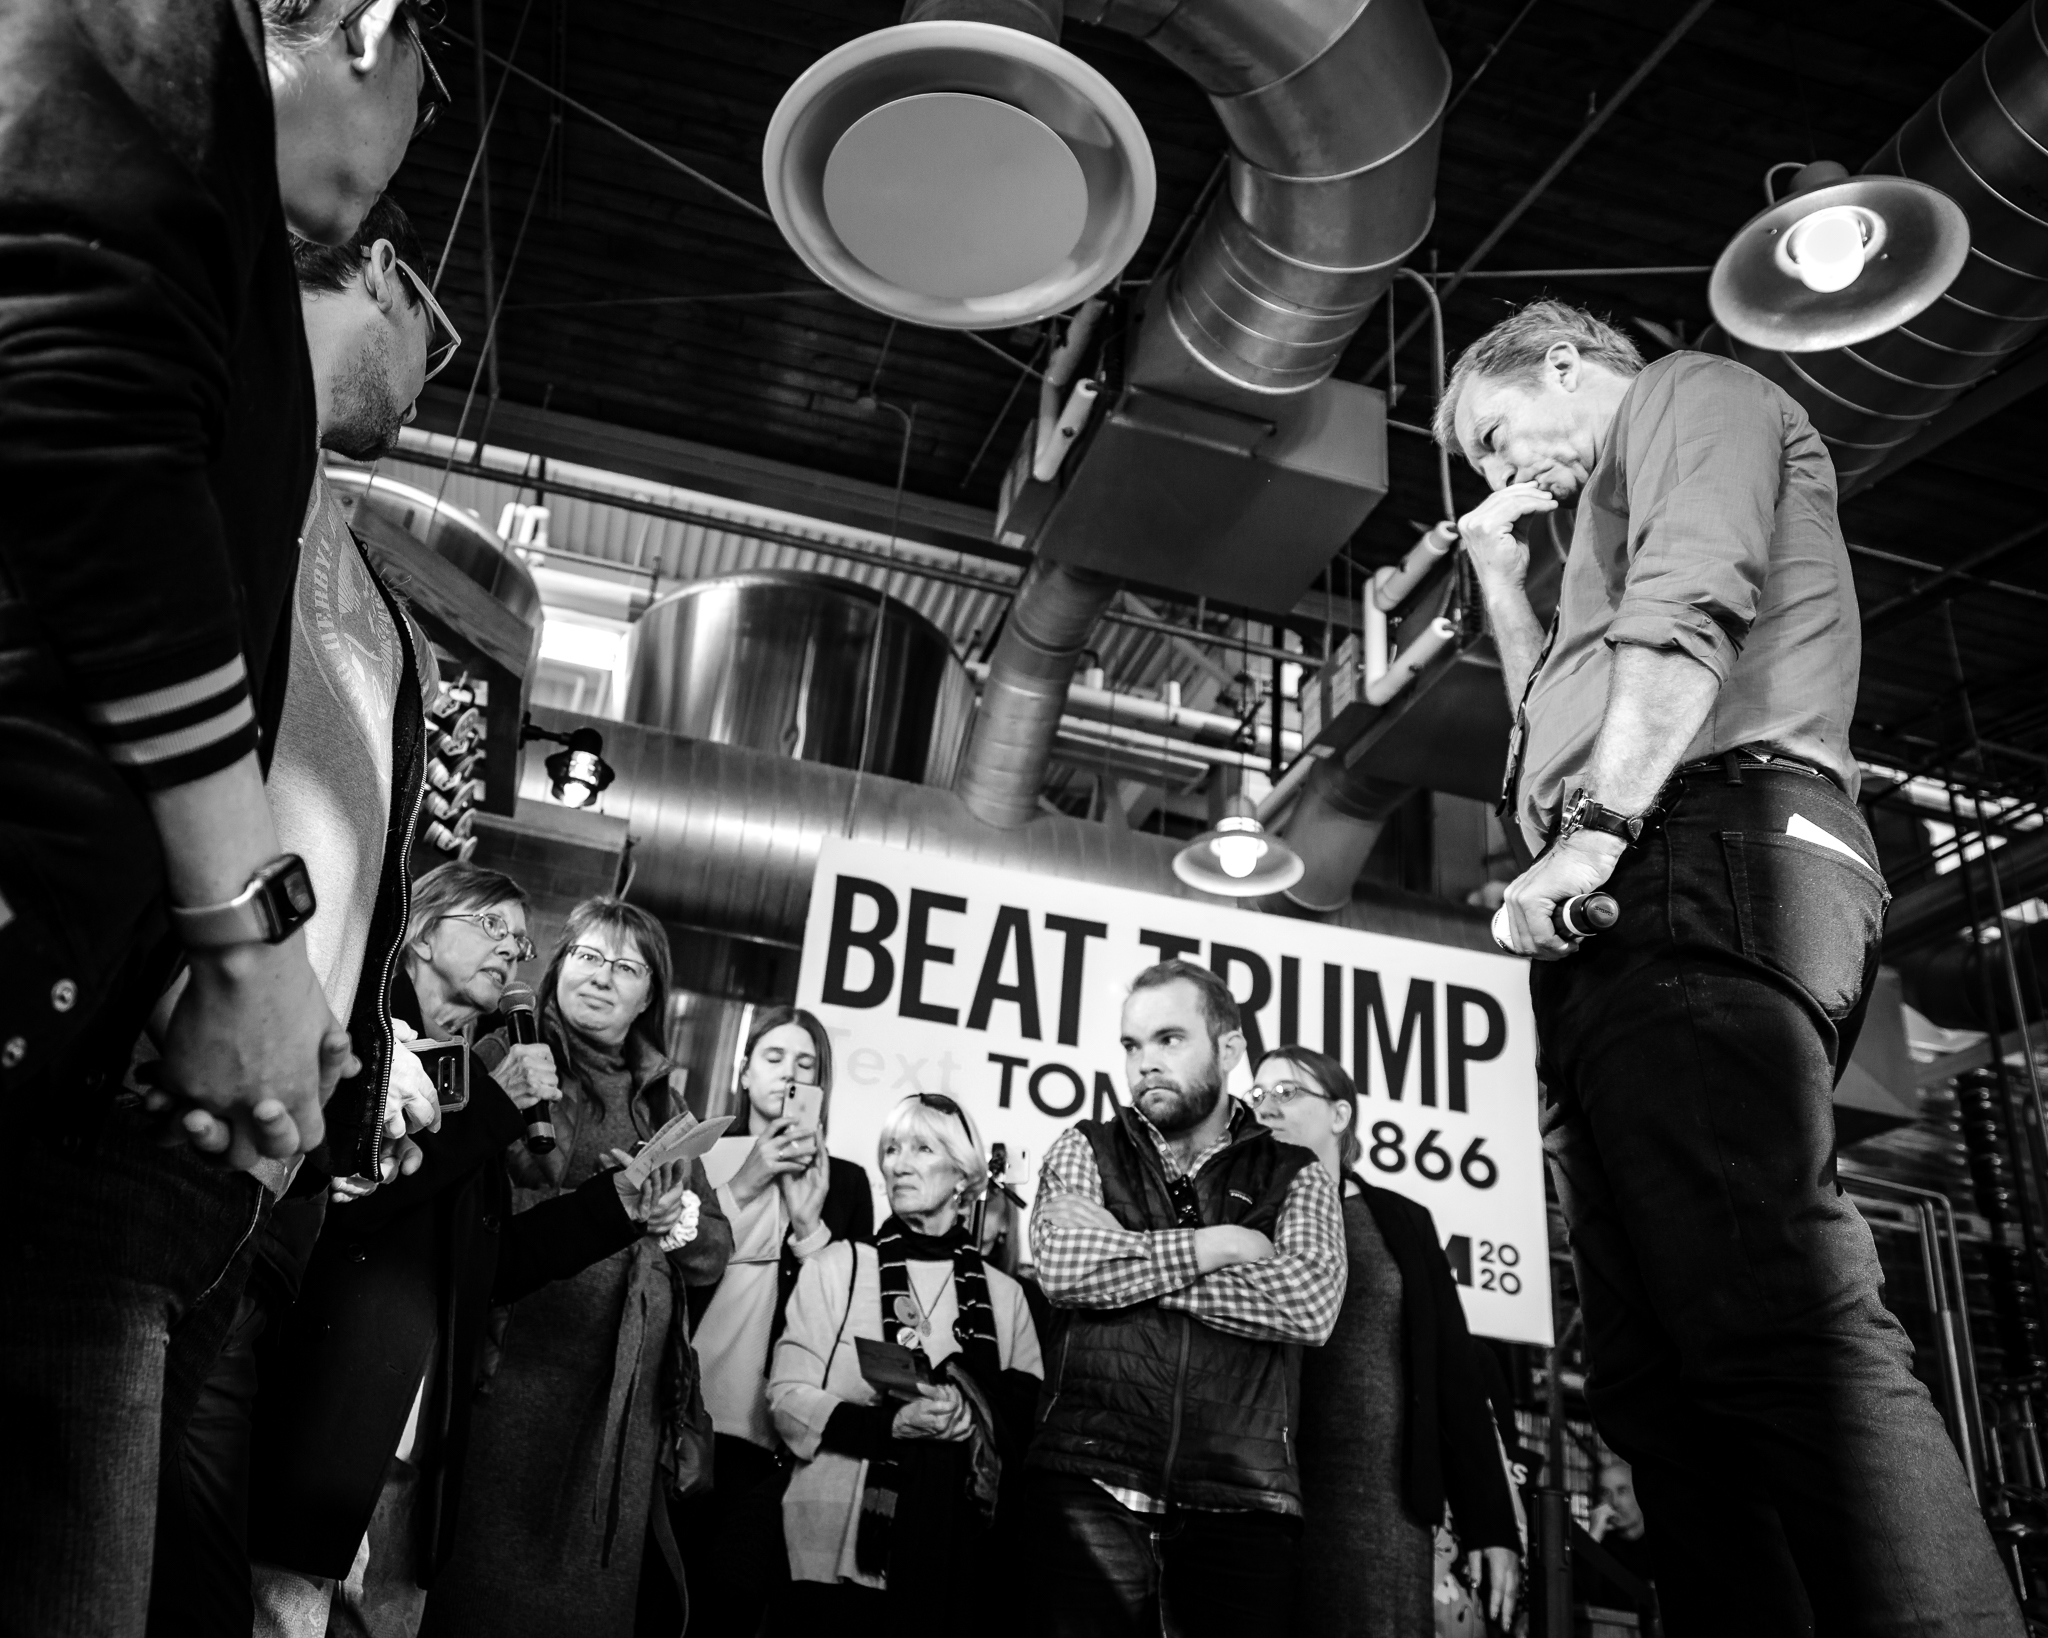 Tom Steyer takes a question from the audience at a rally in a micro-brewery in Coralville, City Iowa. February 2, 2020. Photo Lance Monotone.